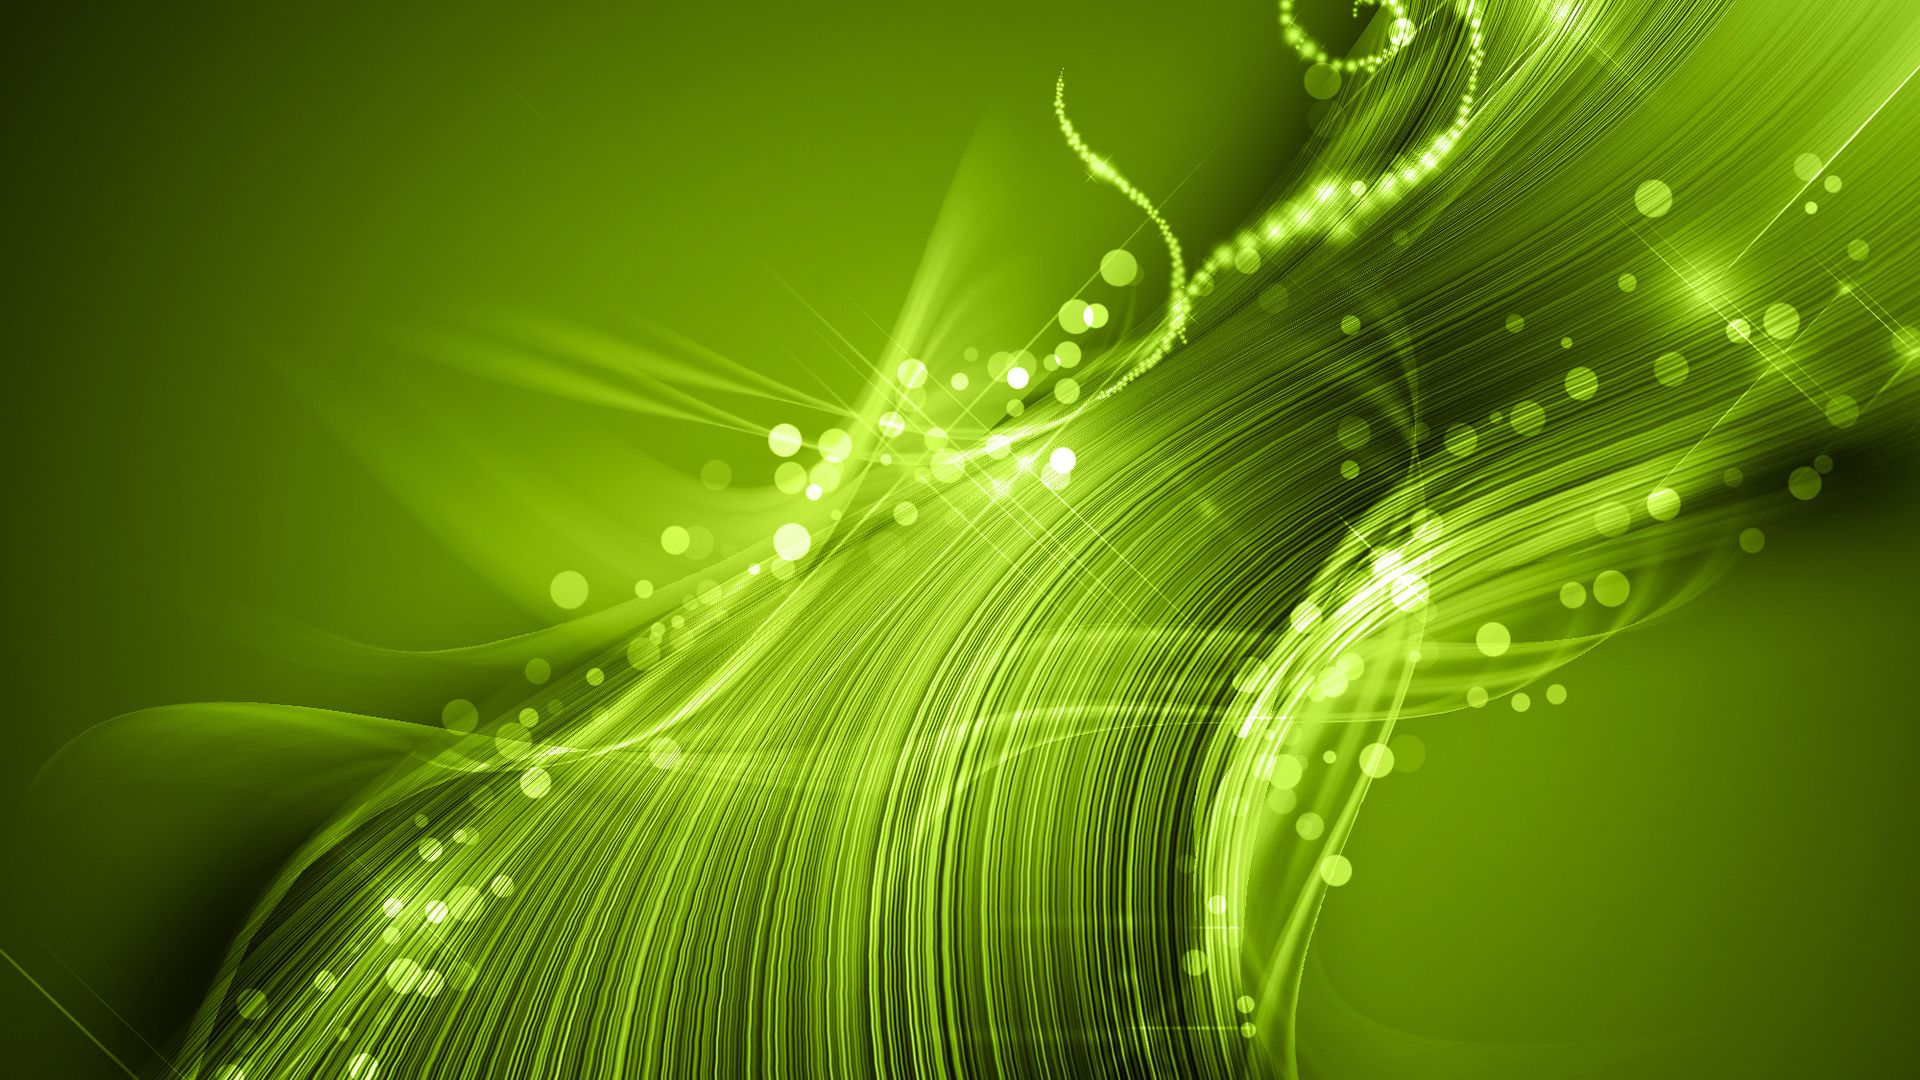 Cool Green wallpaper for laptop